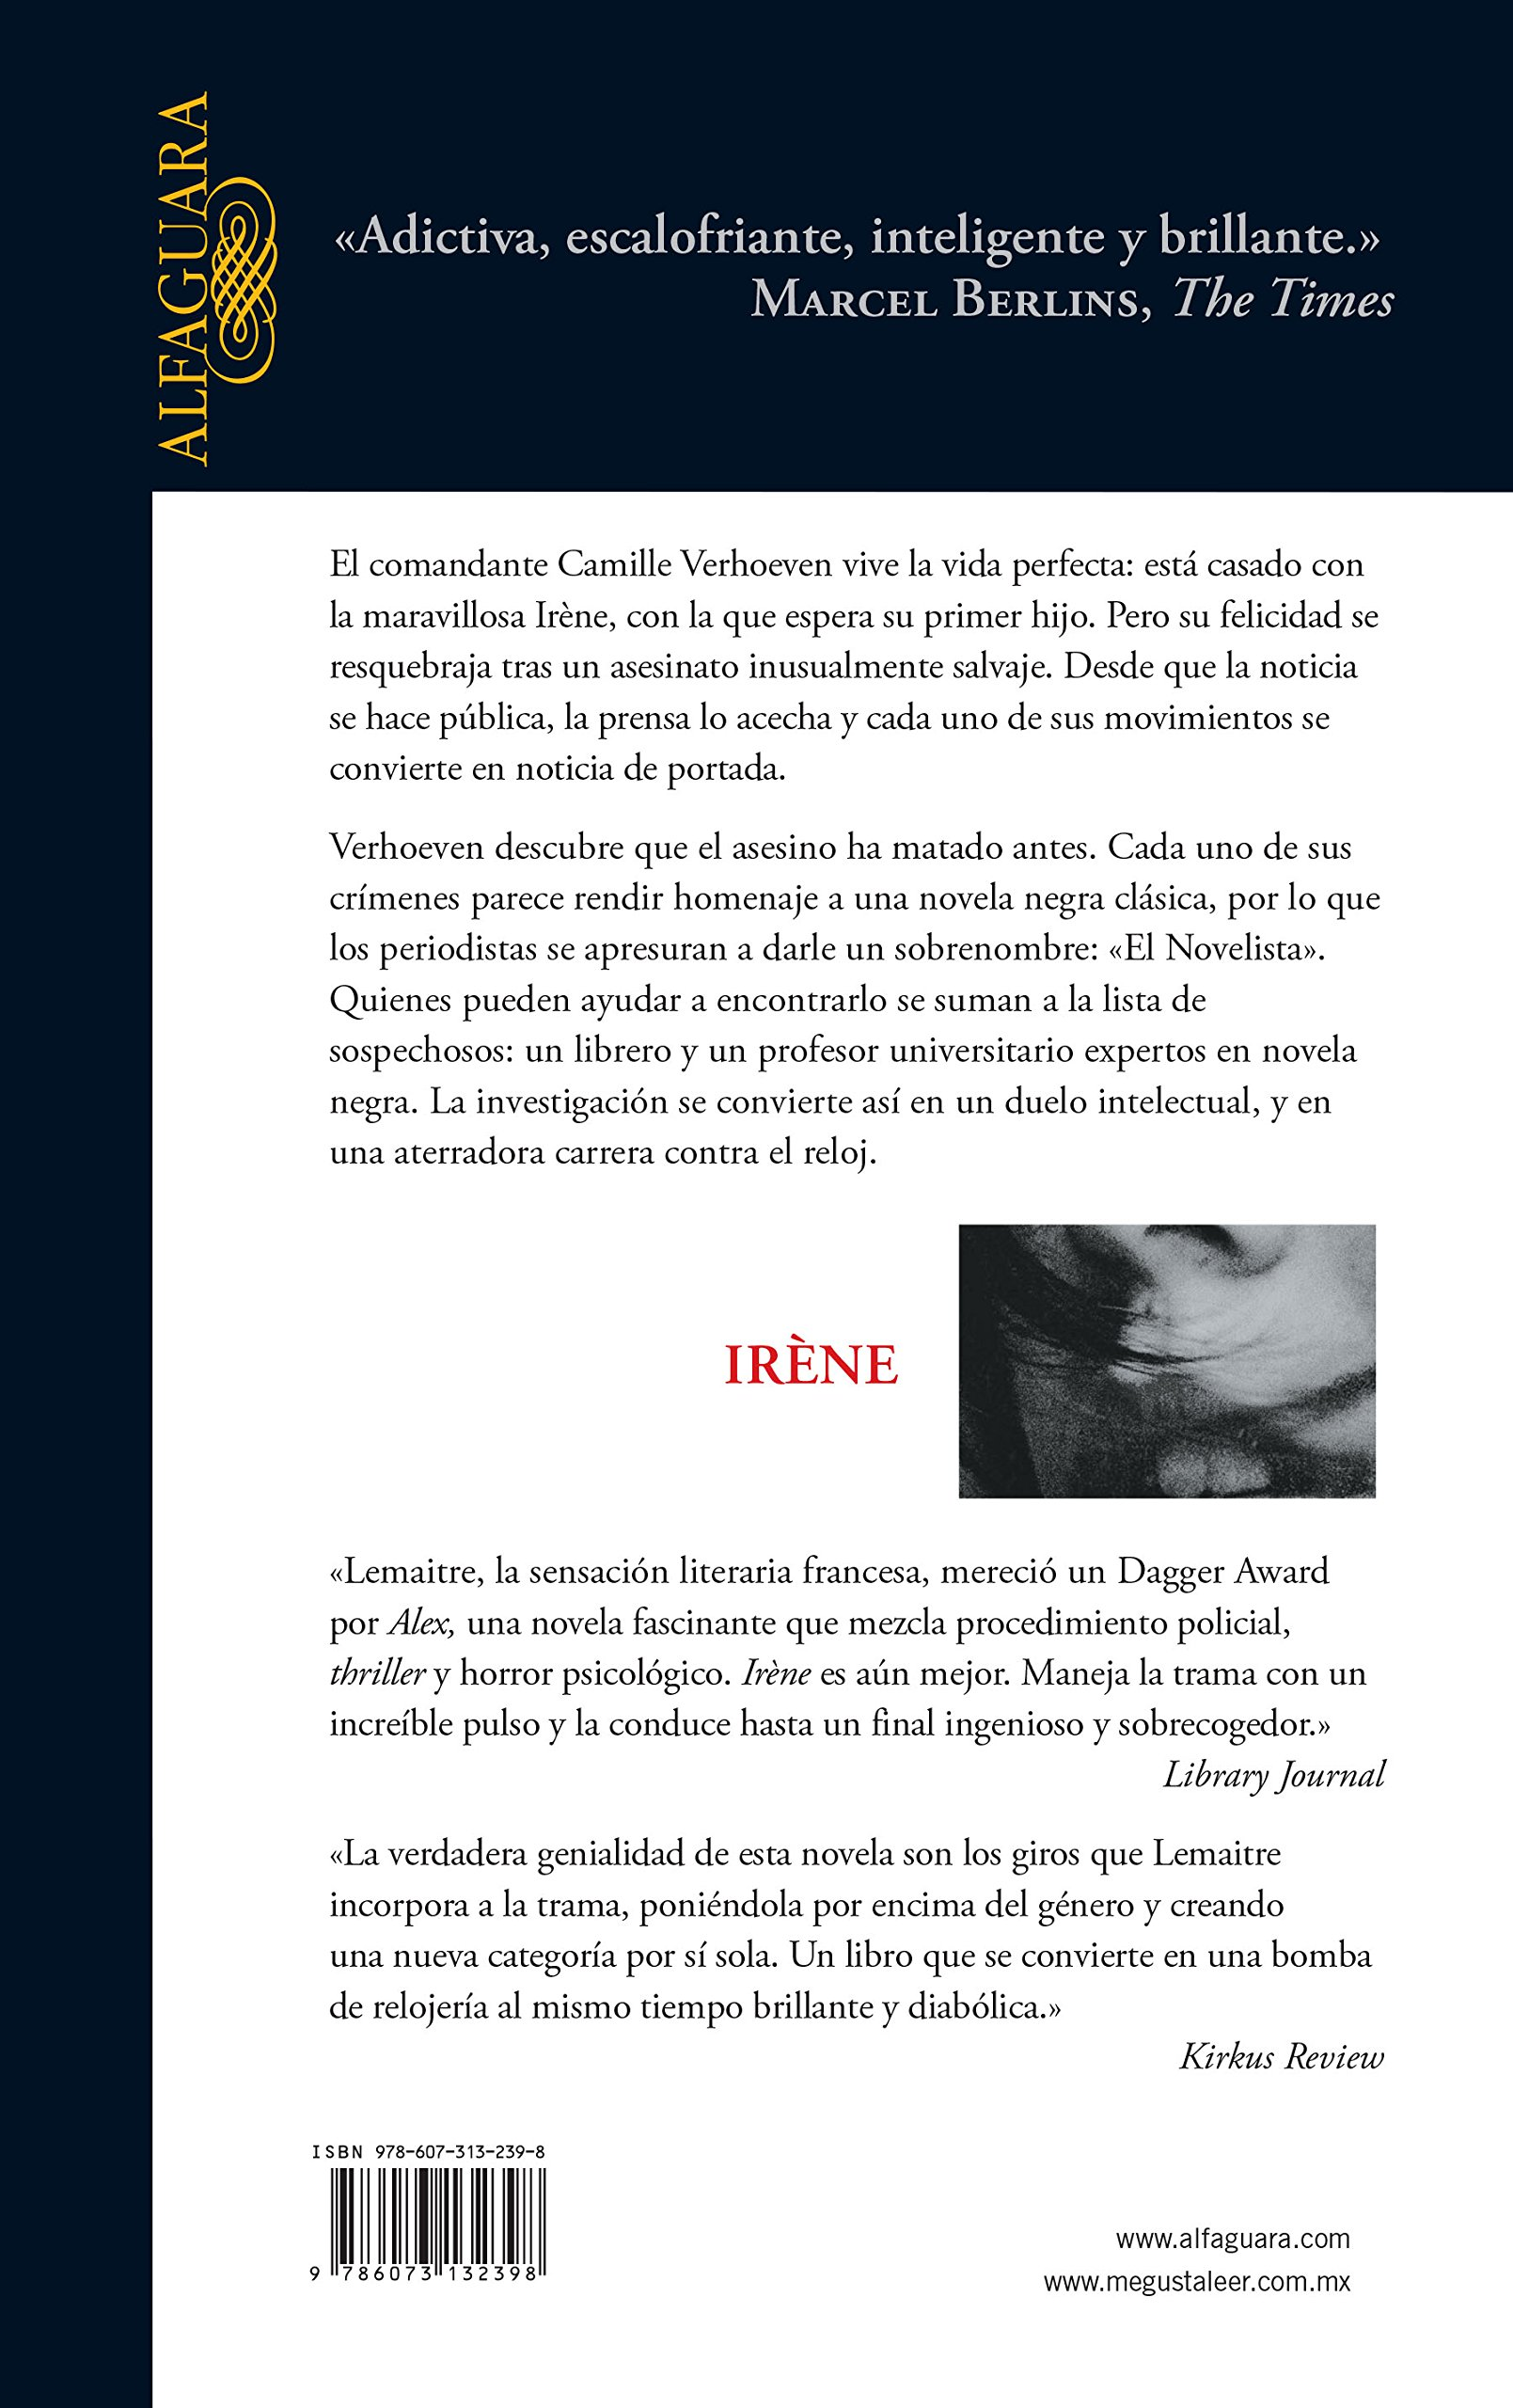 Amazon.com: Irene (Spanish Edition) (9786073132398): Pierre Lemaitre: Books